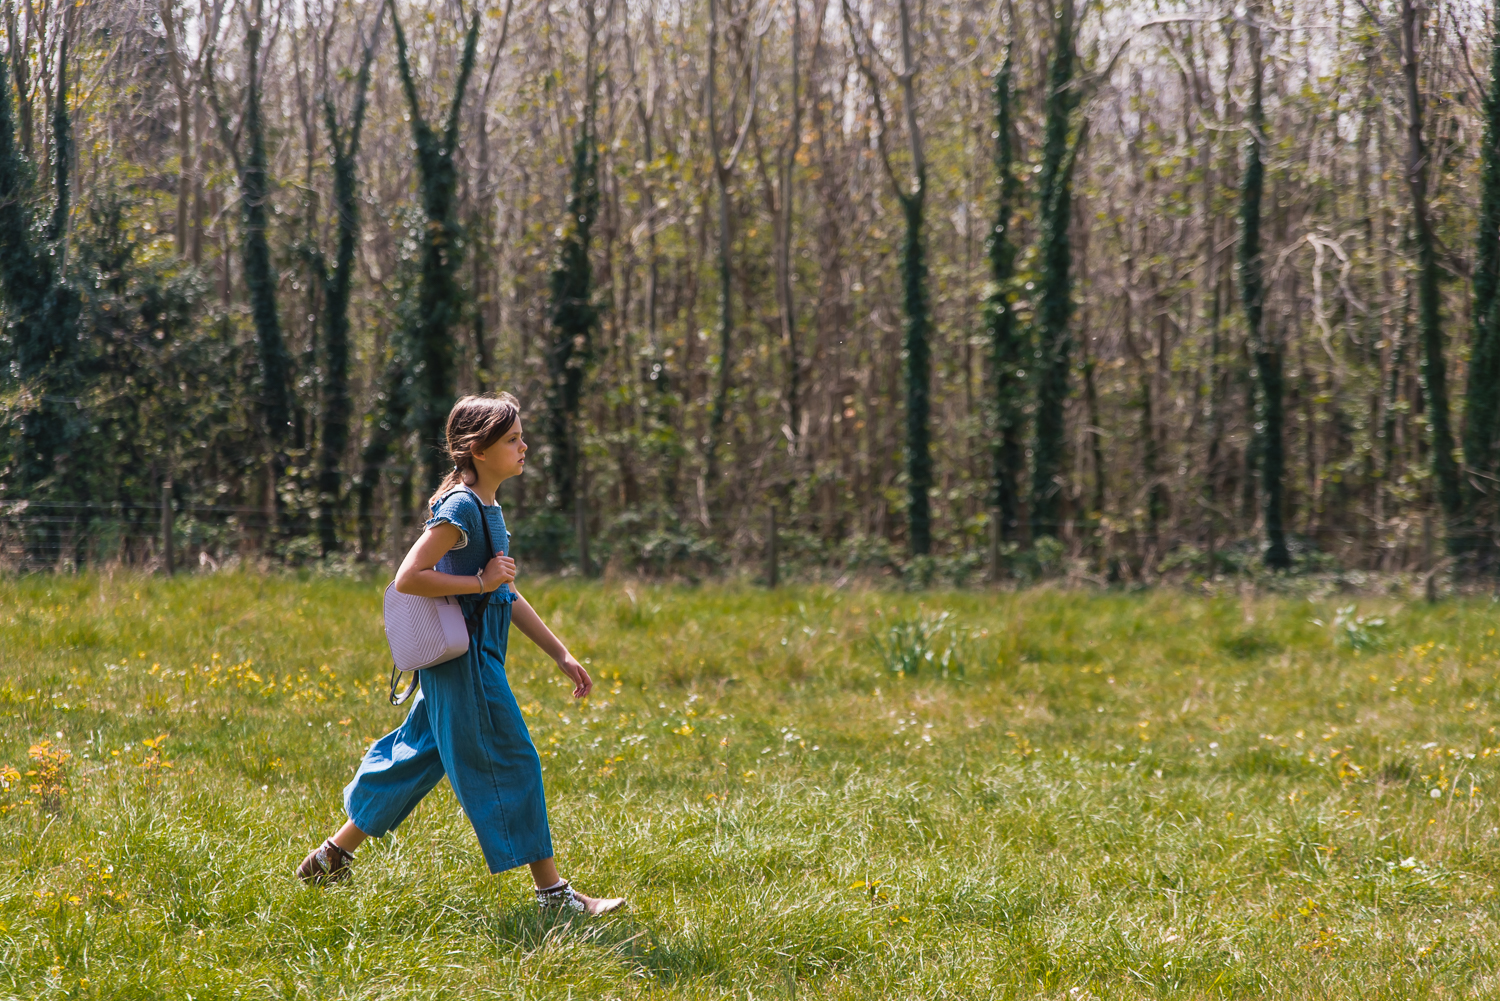 Girl carrying her pink rucksack walking across a field